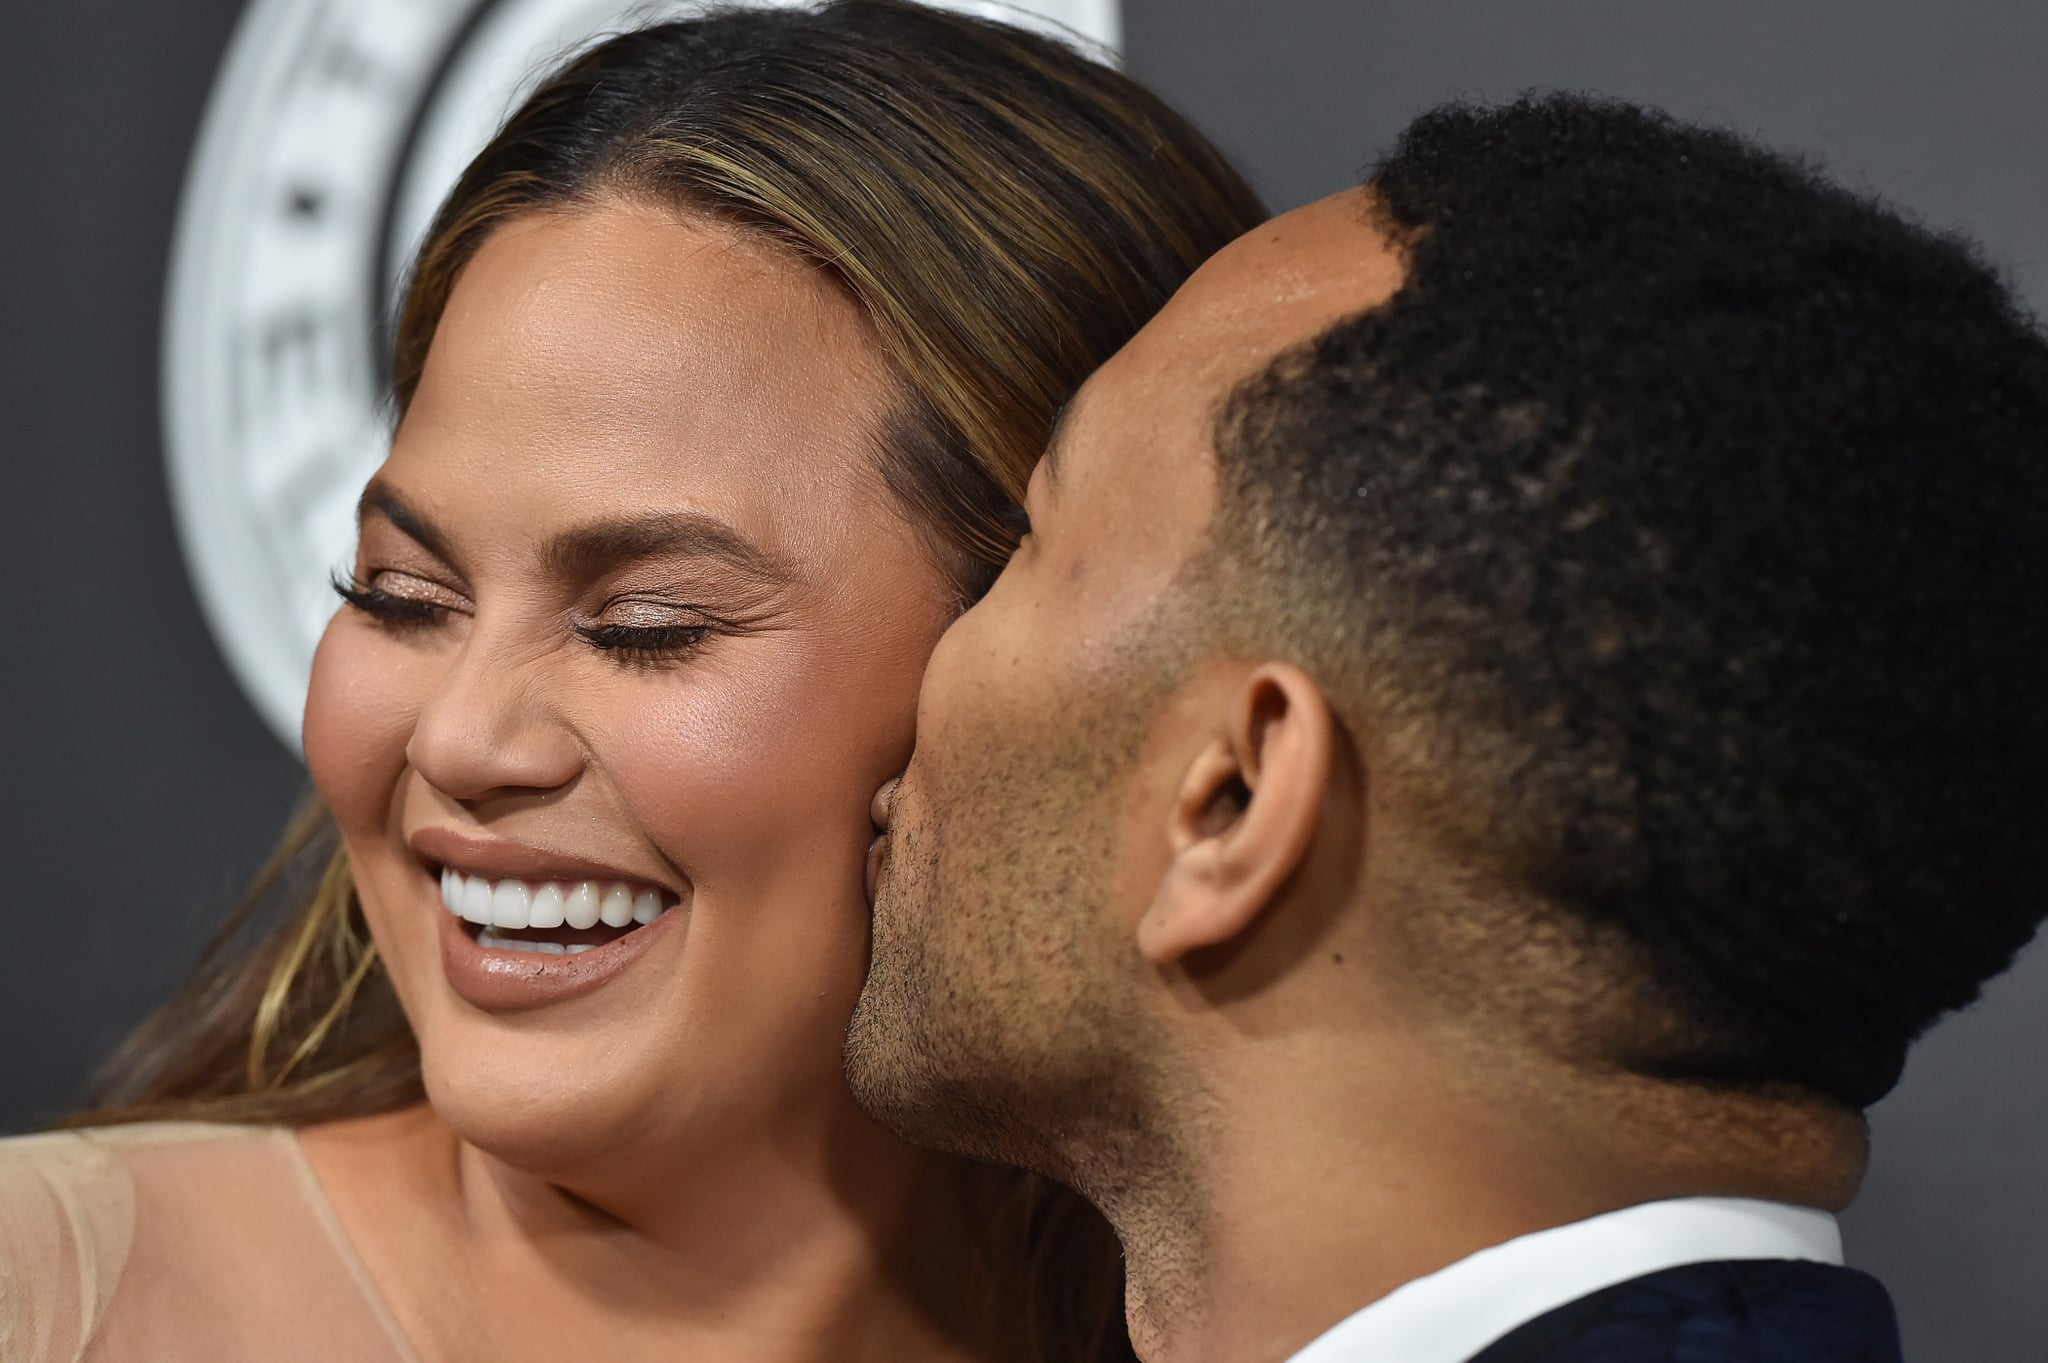 Chrissy Teigen jokes Luna can be cruel